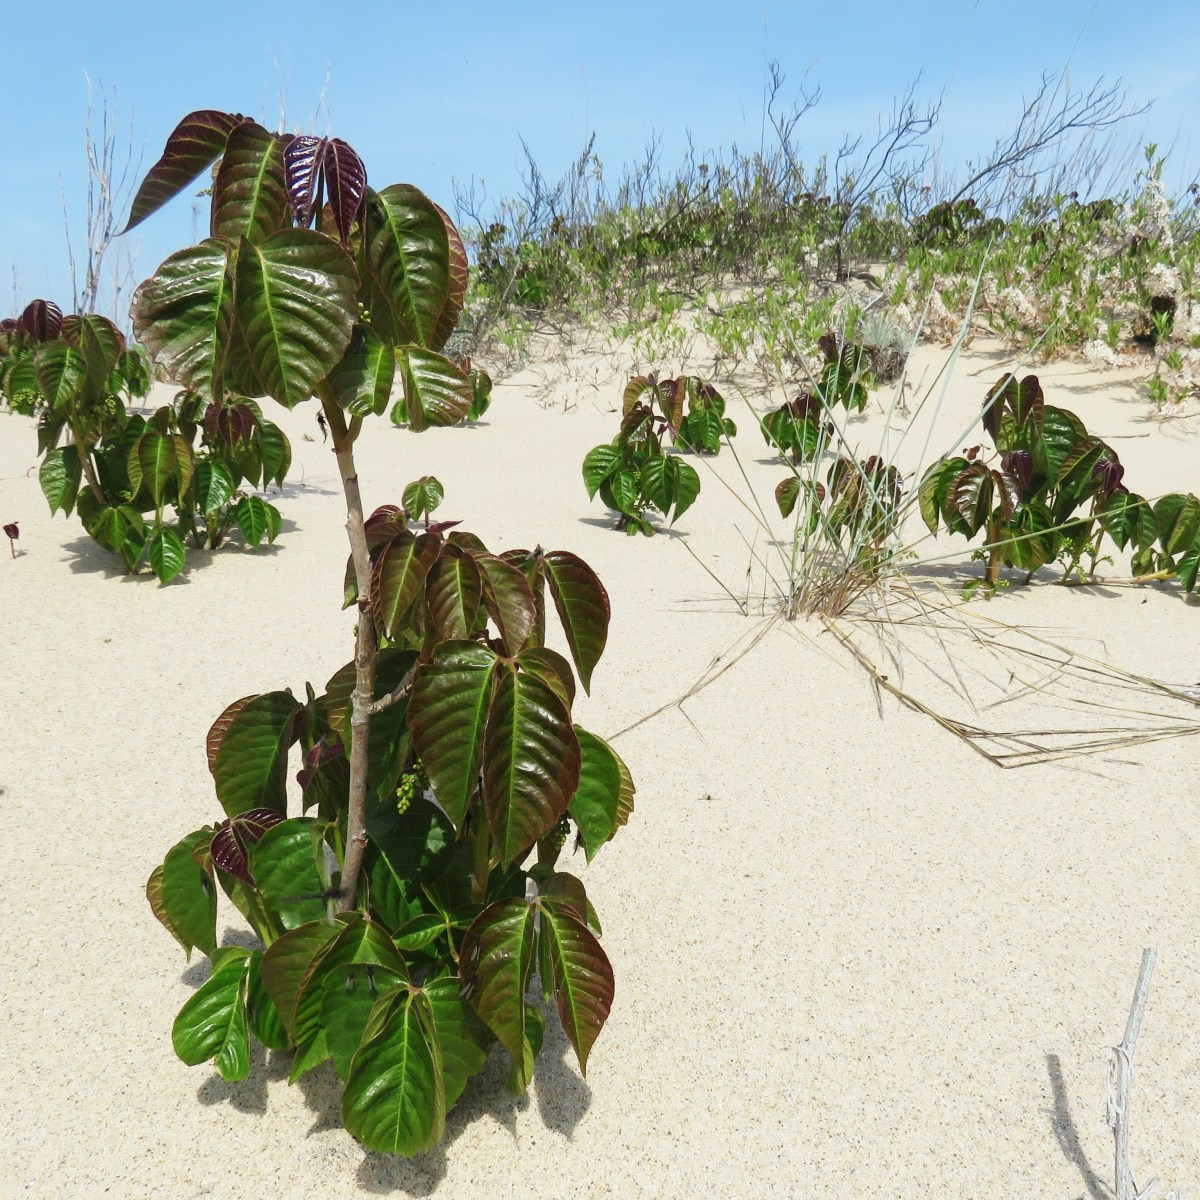 Poison ivy growing in a sand dune